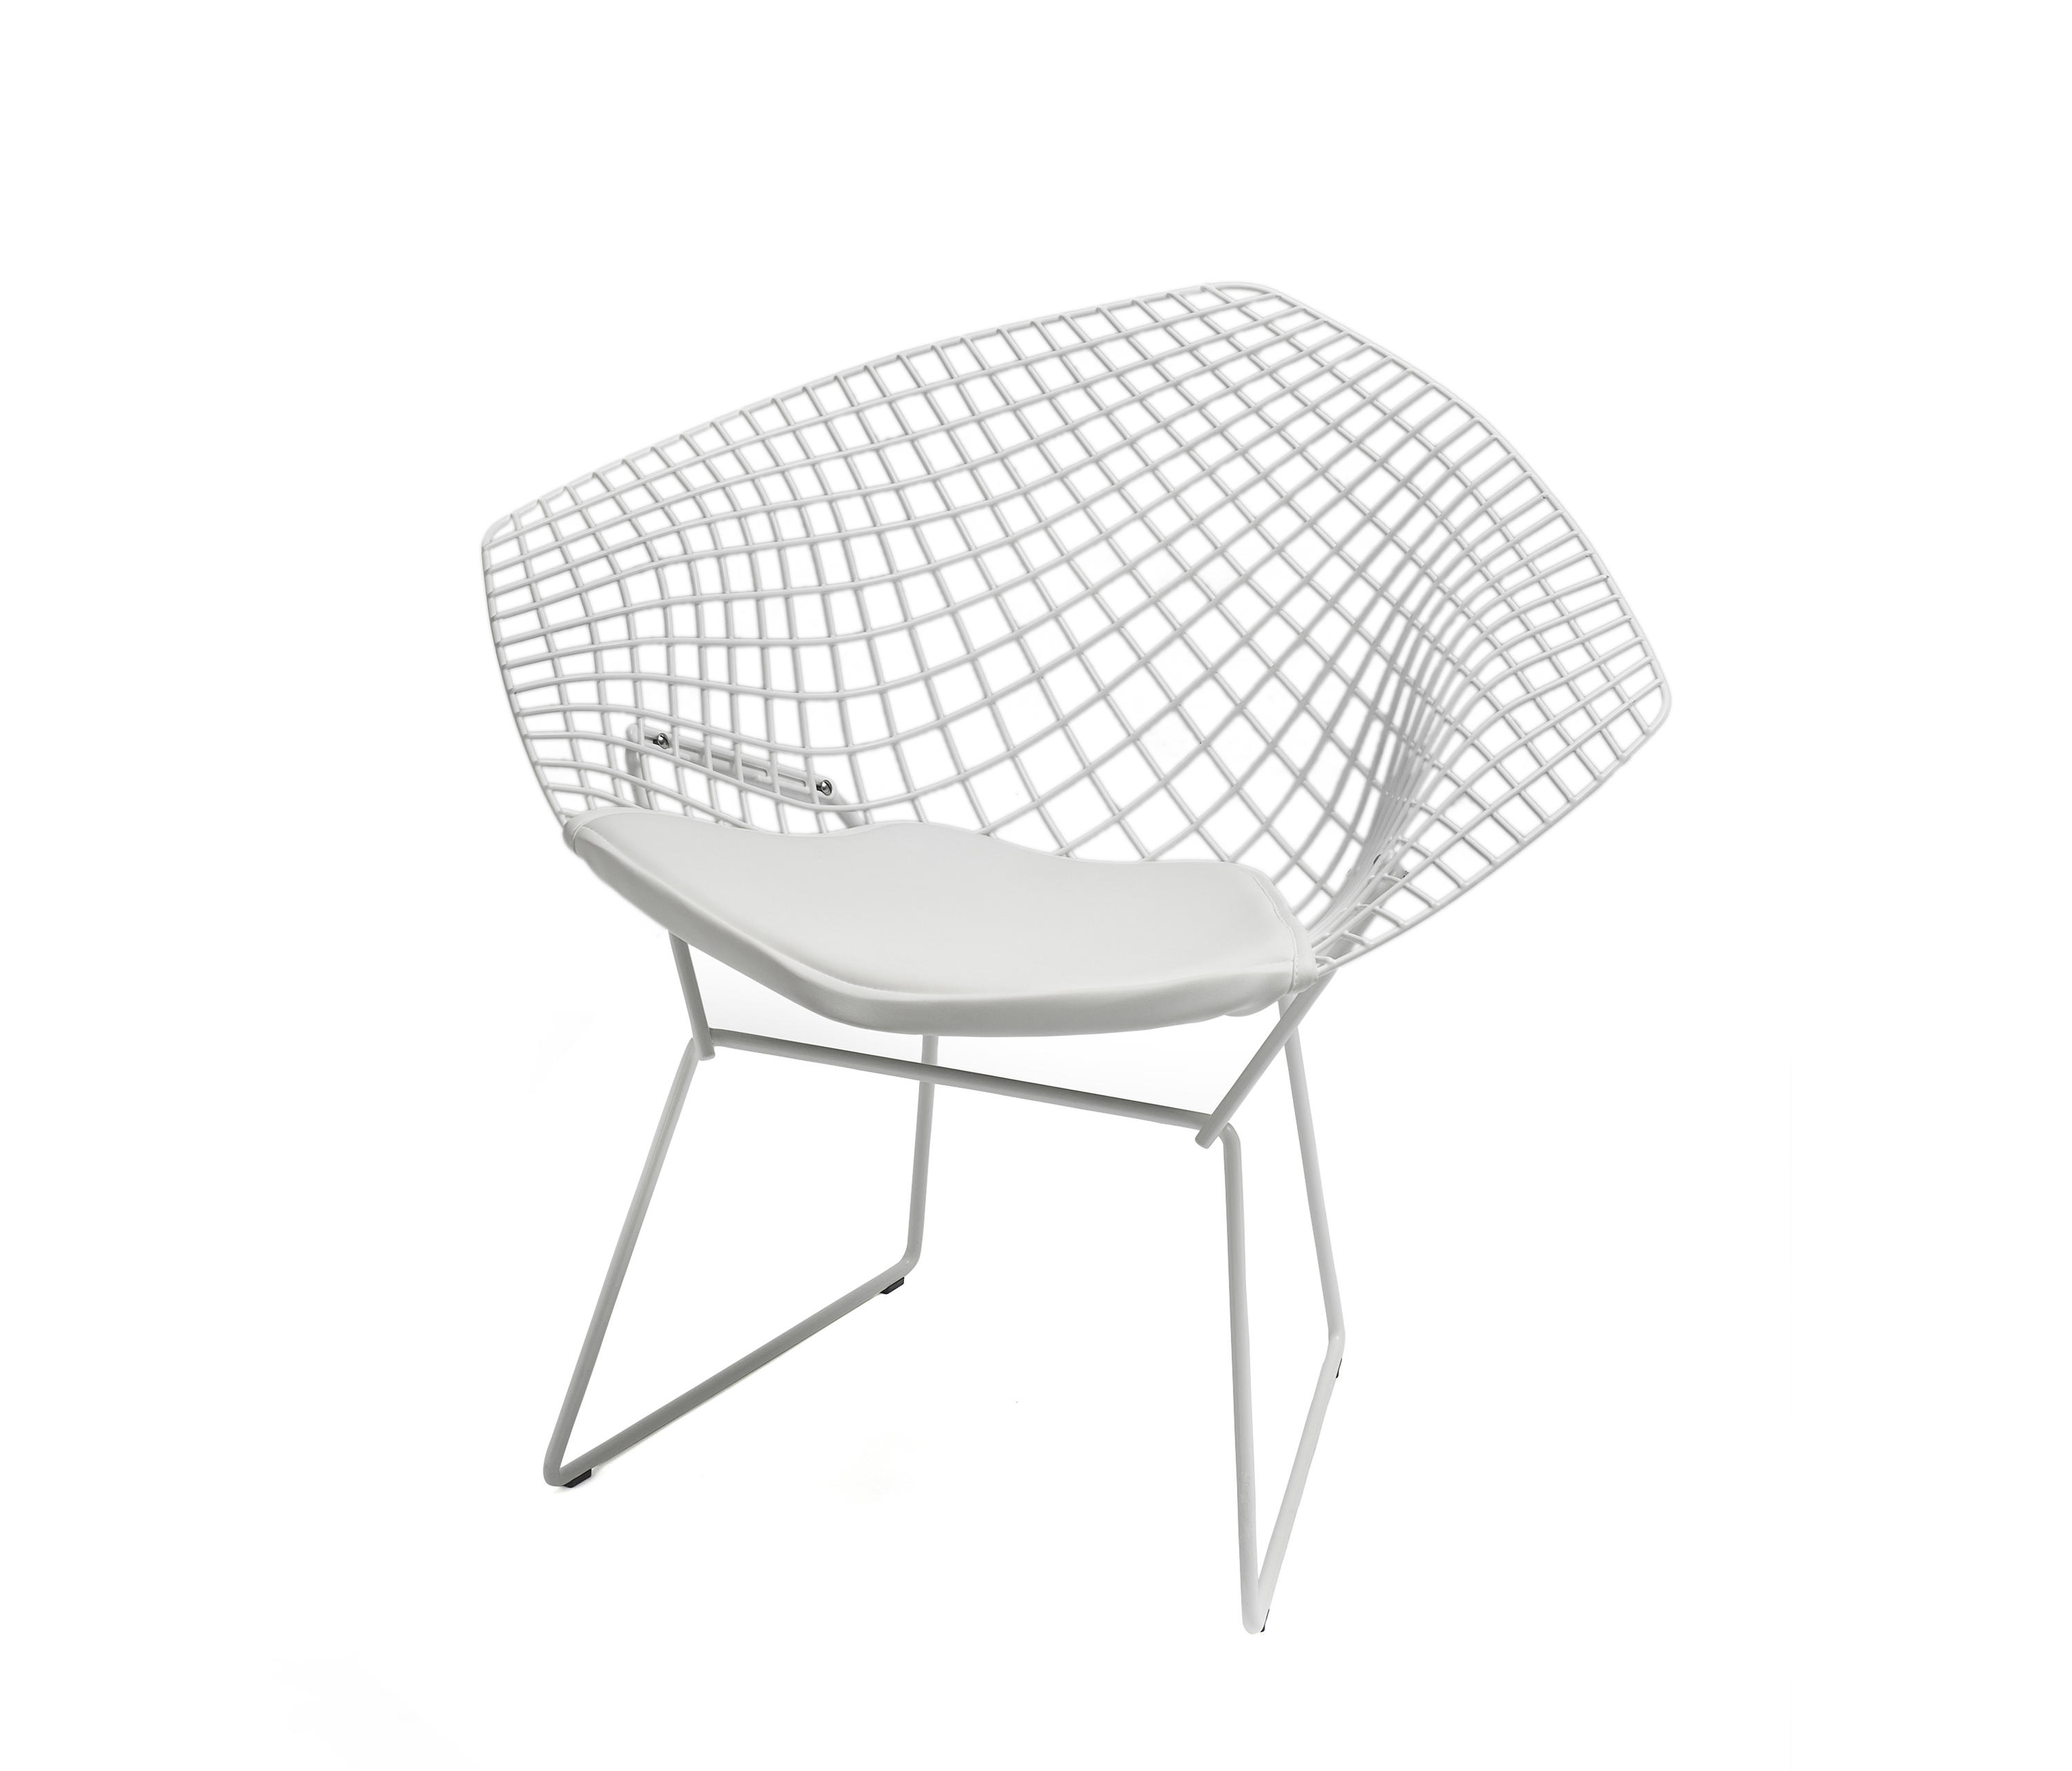 bertoia diamond chair outdoor garden armchairs from knoll international architonic. Black Bedroom Furniture Sets. Home Design Ideas